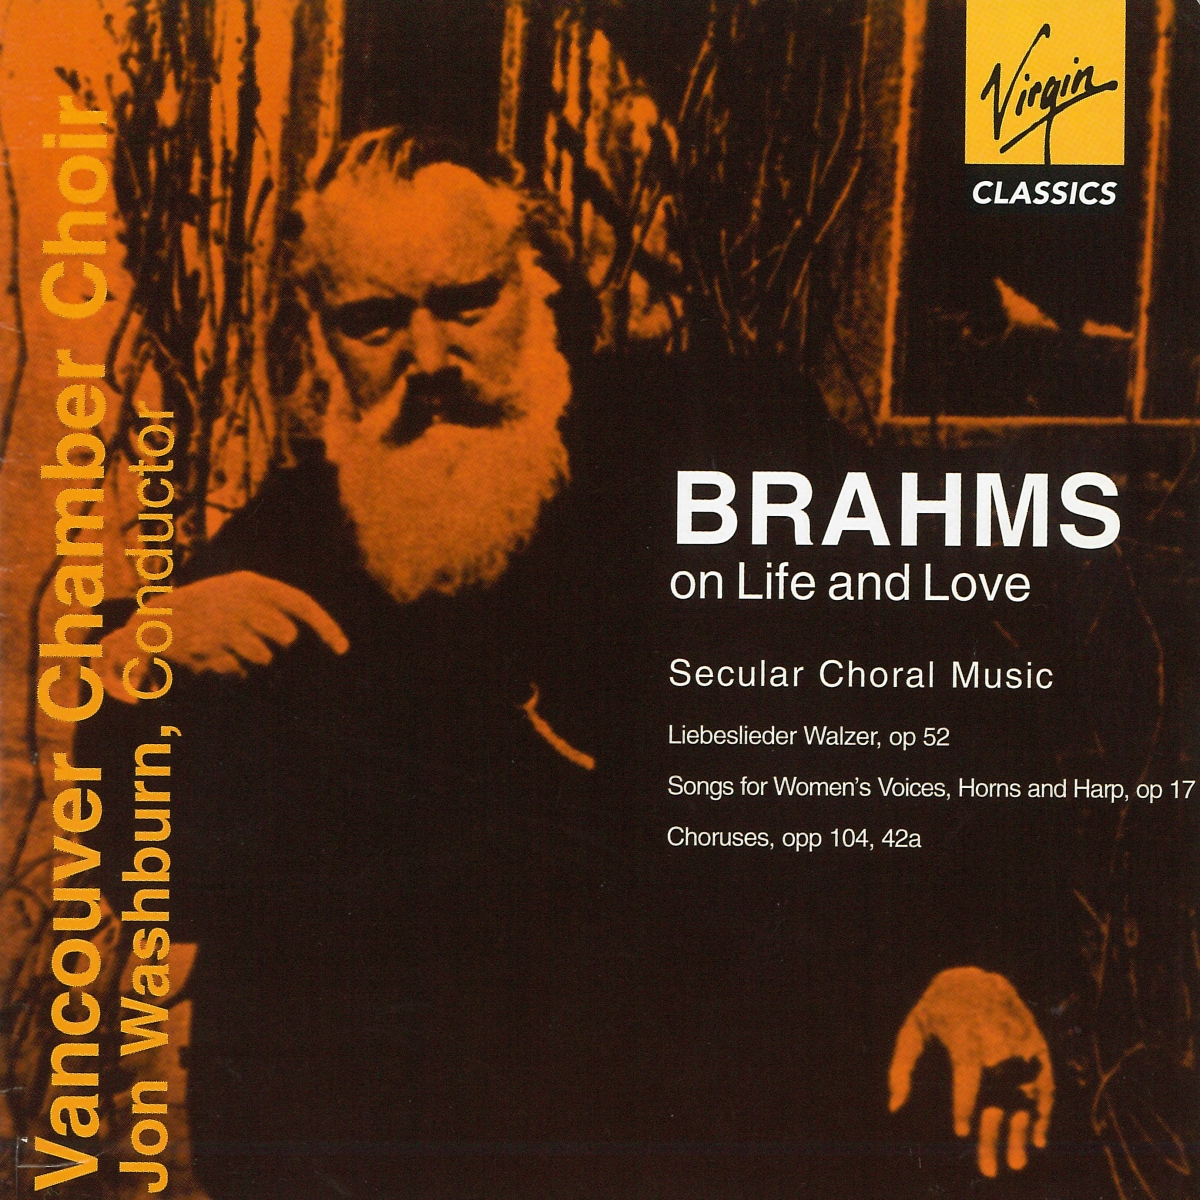 Brahms on Life and Love